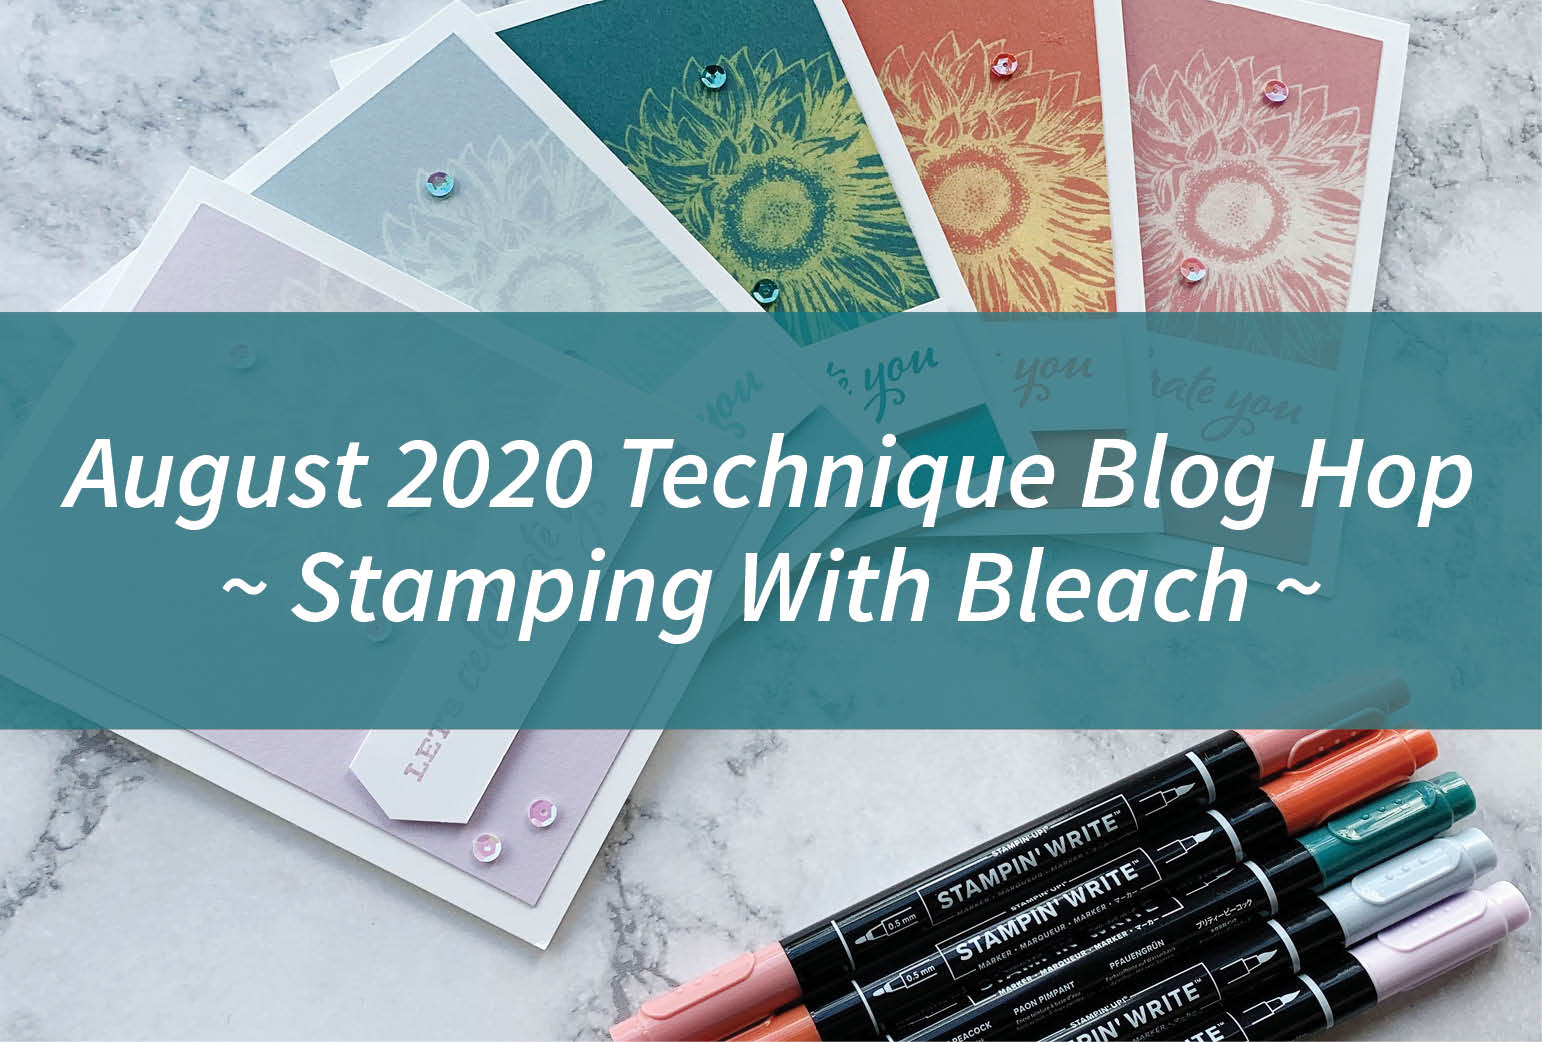 August 2020 Technique Blog Hop – Stamping With Bleach